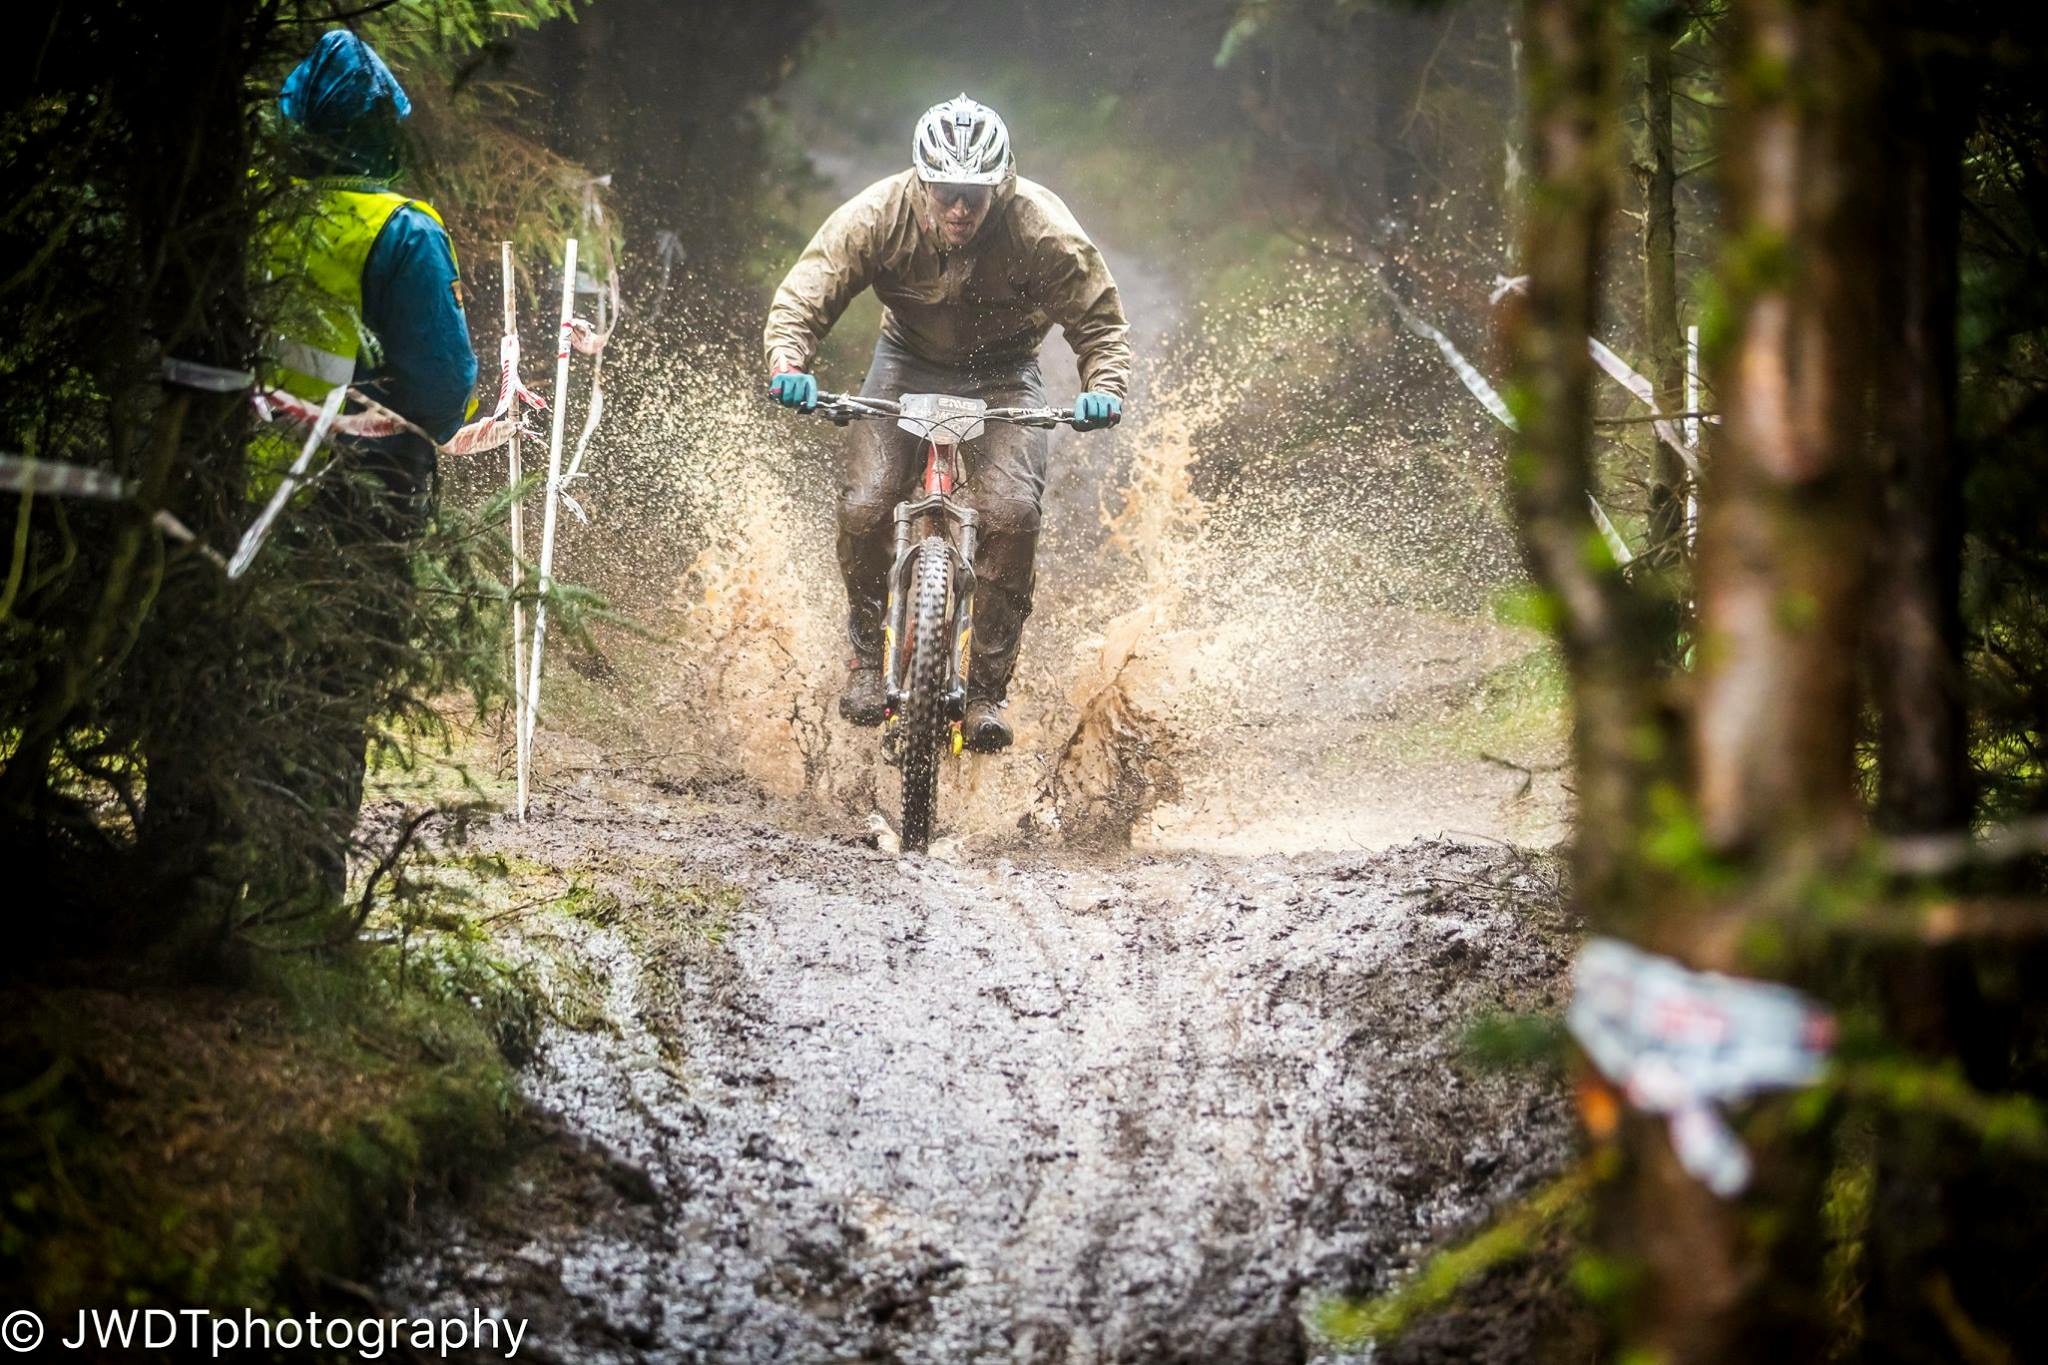 Ard-Moors-Enduro-mud-splash